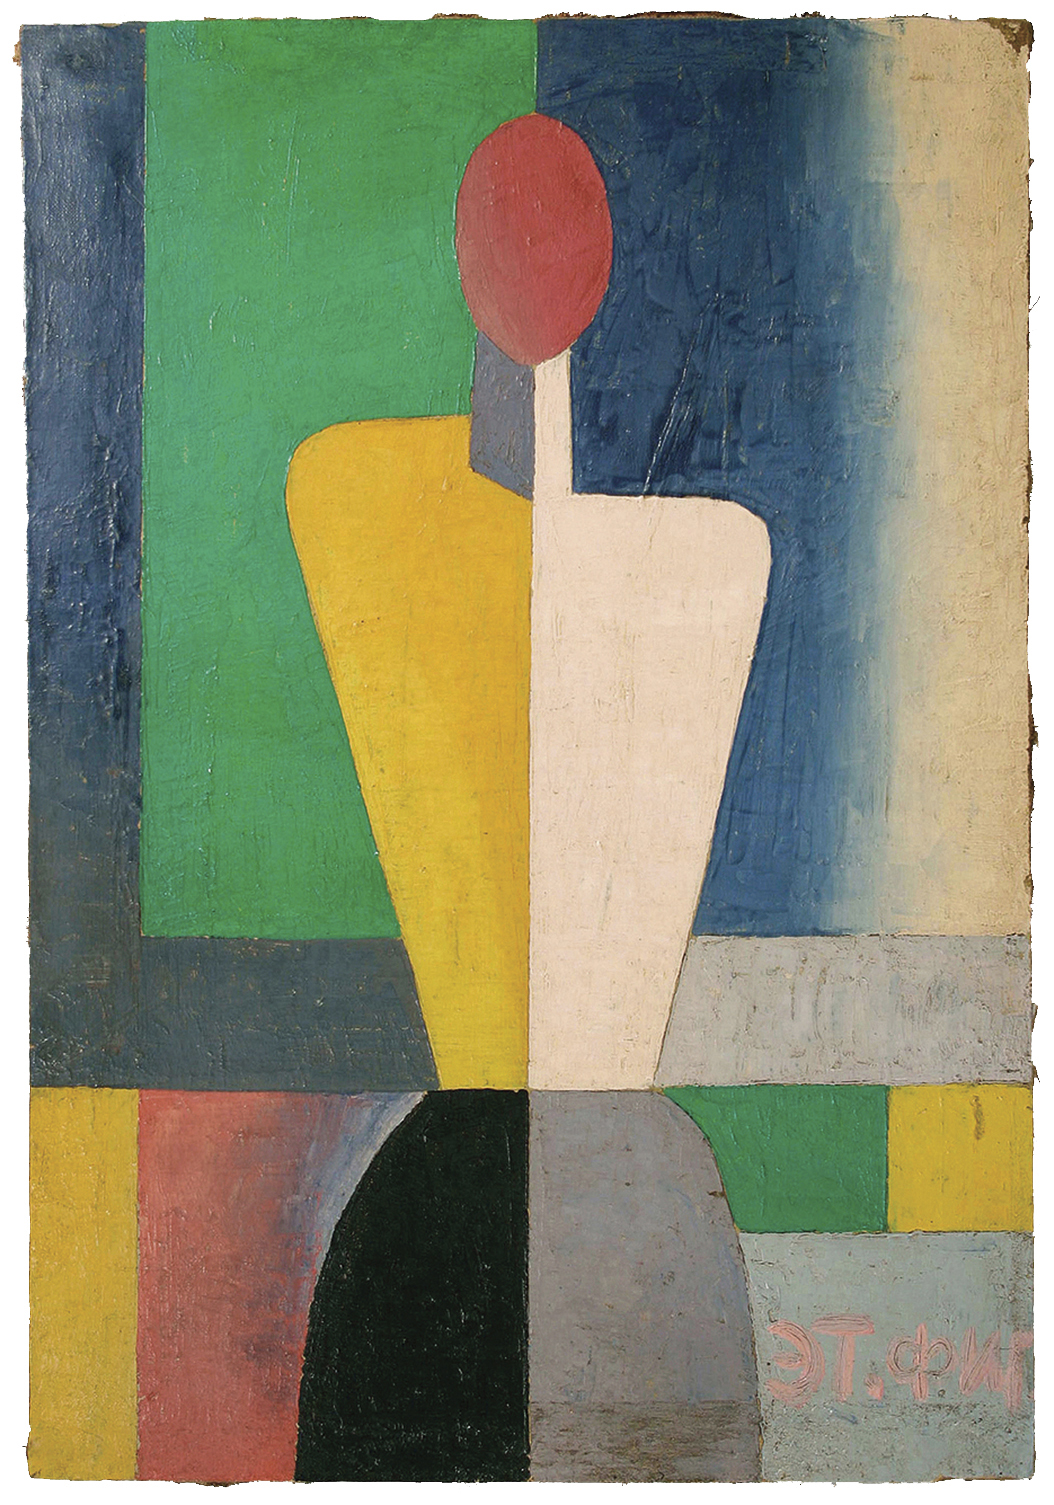 """Unattributed. Unsigned. In the style of Kasimir Malevich.Text in Russian, lower right front corner, translates to """"Et. fig"""".   Oil on canvas. 51 x 36 cm."""